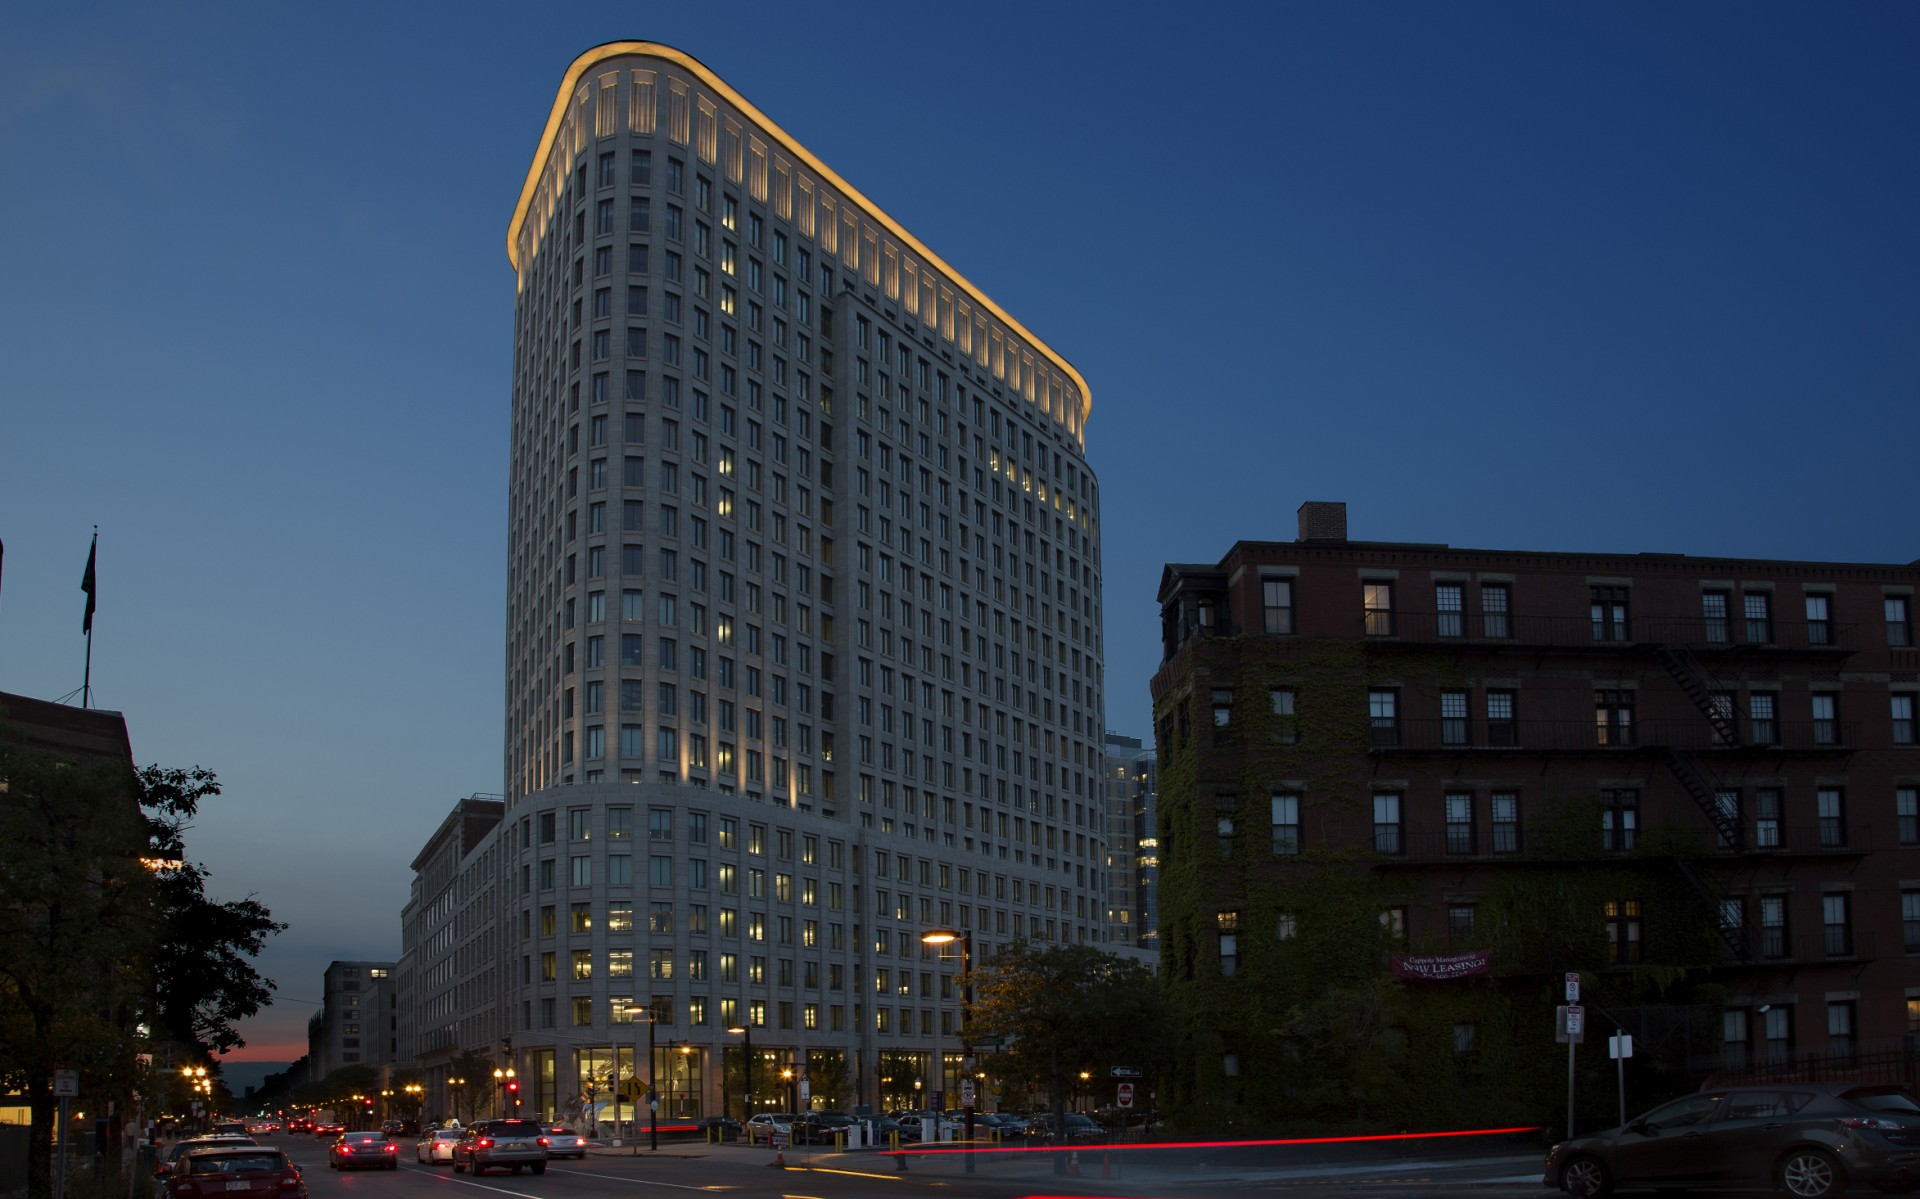 Lighting designers Lam Partners used light to accentuate Boston's new Liberty Mutual building